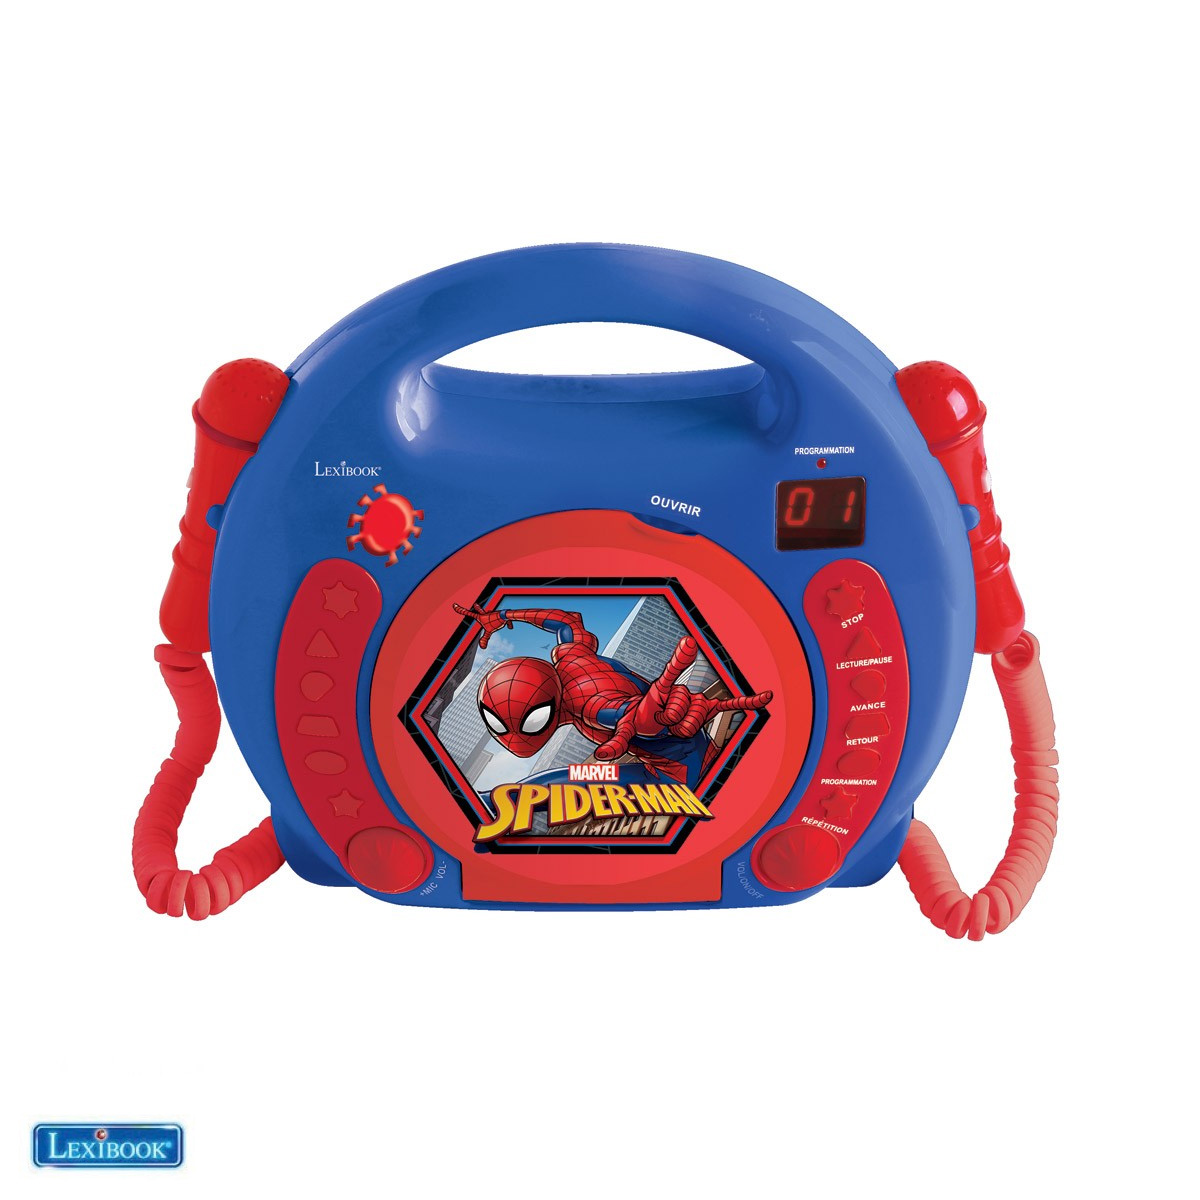 Lexibook - Spider-Man Portable CD player with 2 Sing Along microphones (RCDK100SP)